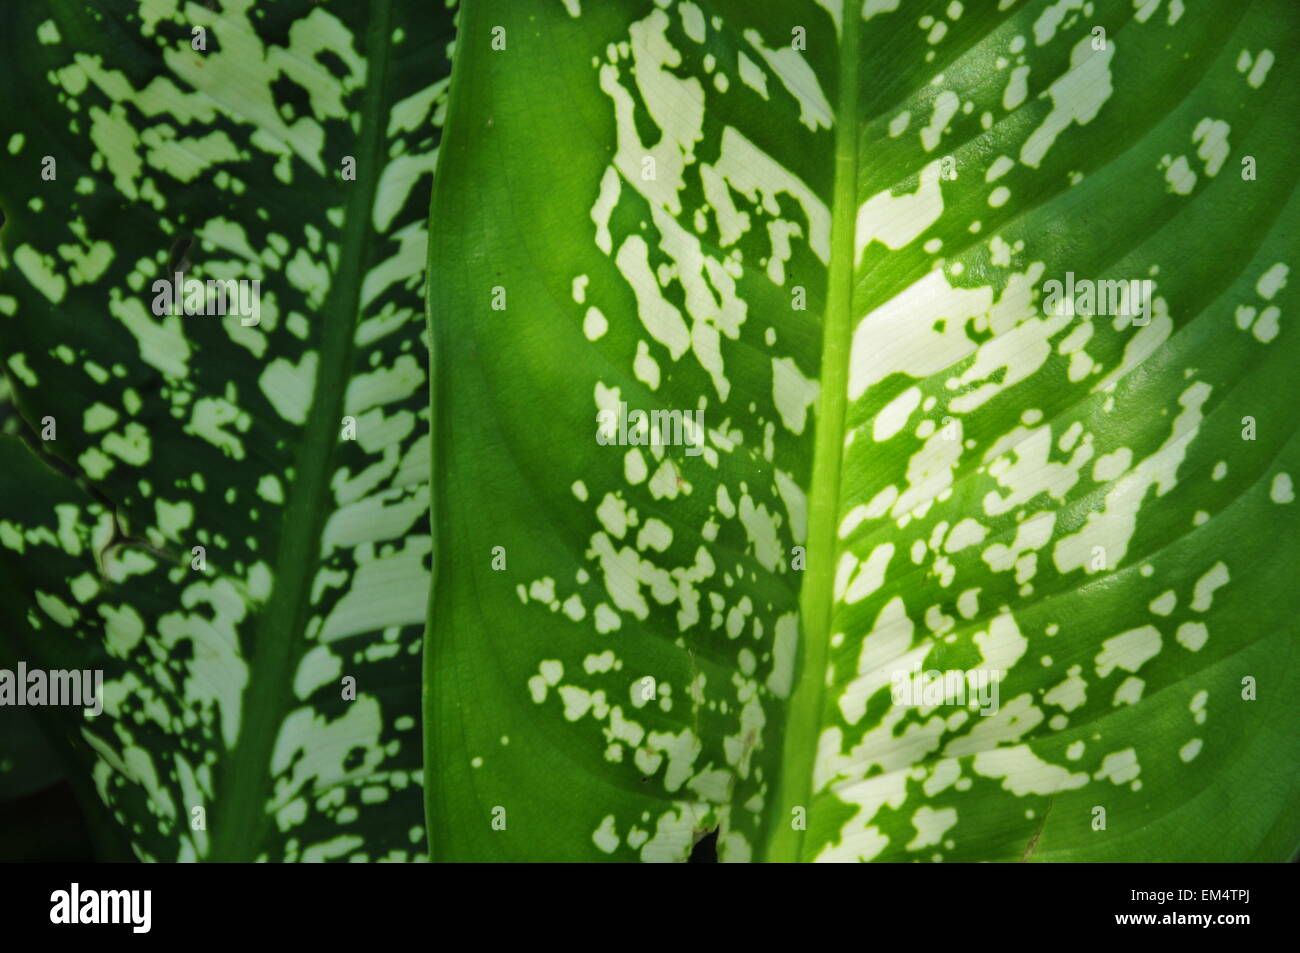 Green and white textured leaf with narrow veins. - Stock Image